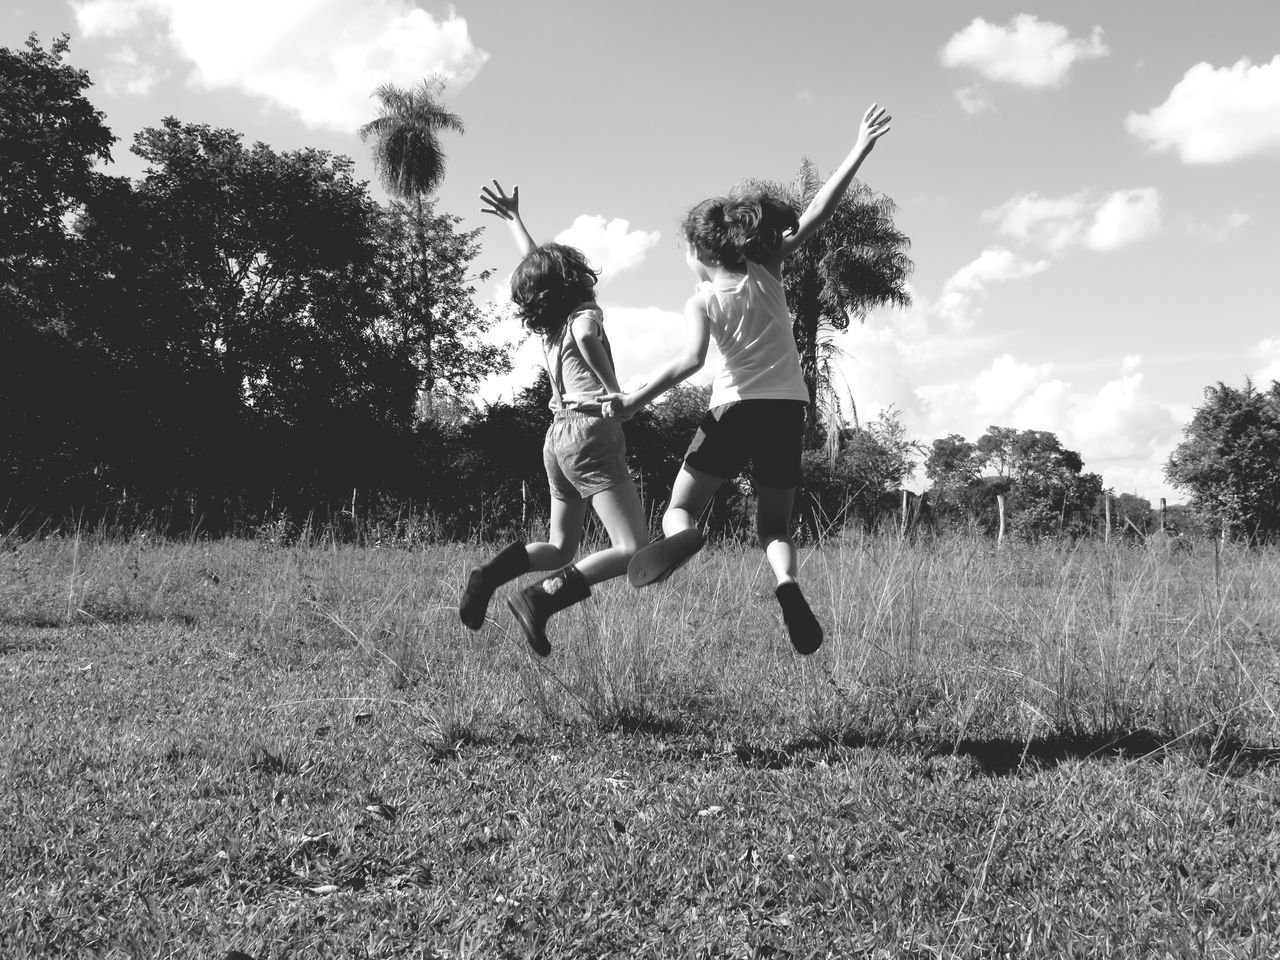 Rear View Of Siblings Jumping On Grassy Field Against Cloudy Sky